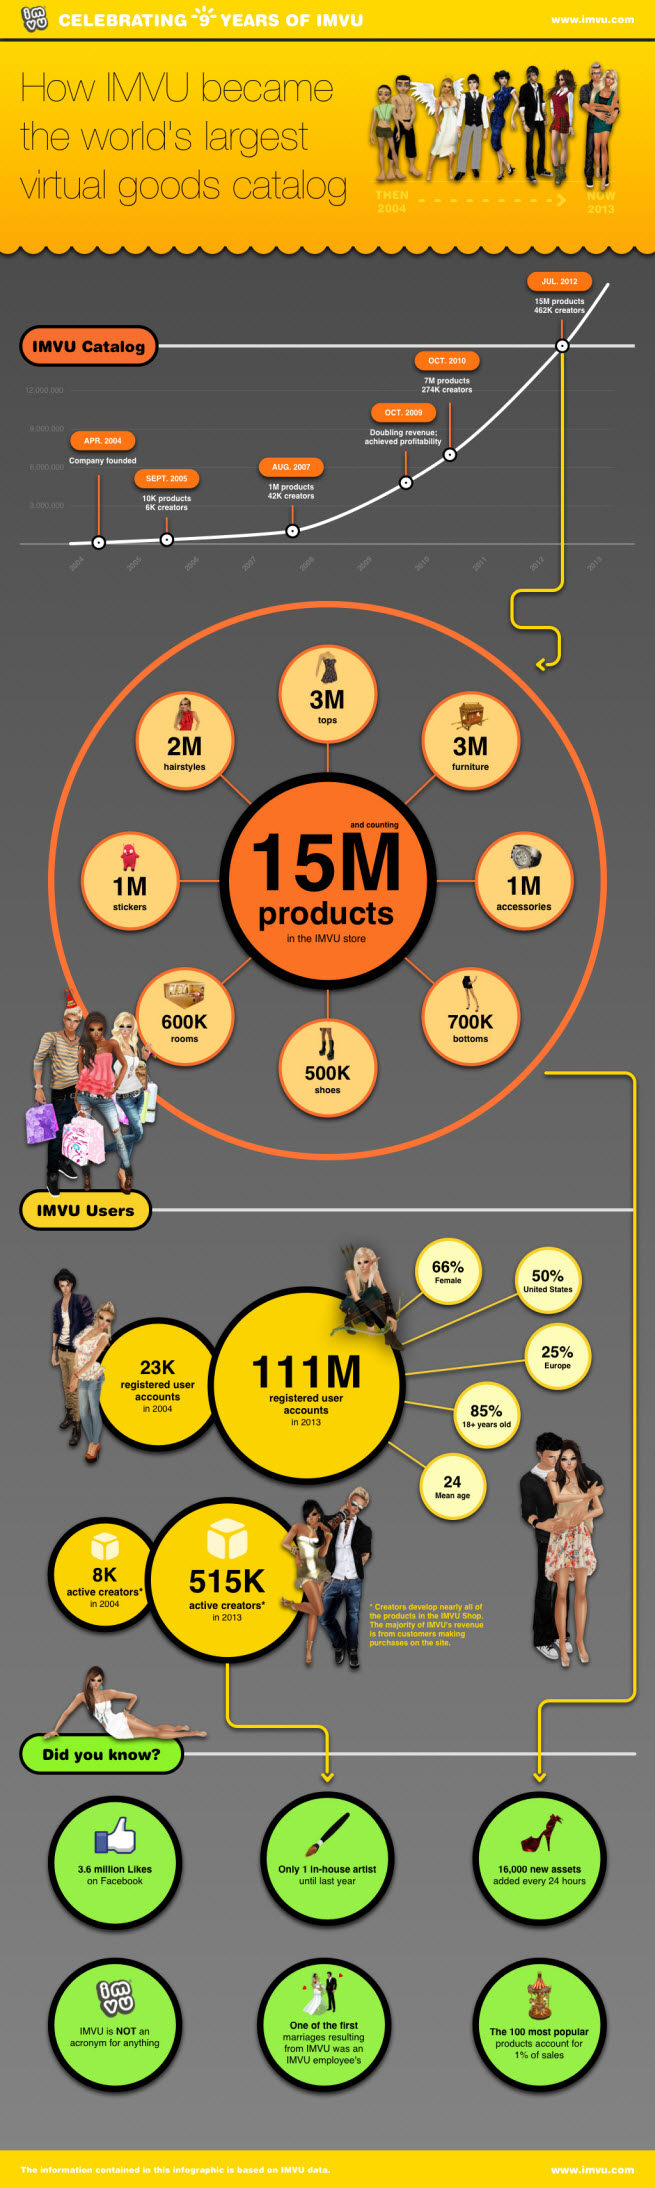 IMVU continues to retain engaged fans for its virtual chat rooms